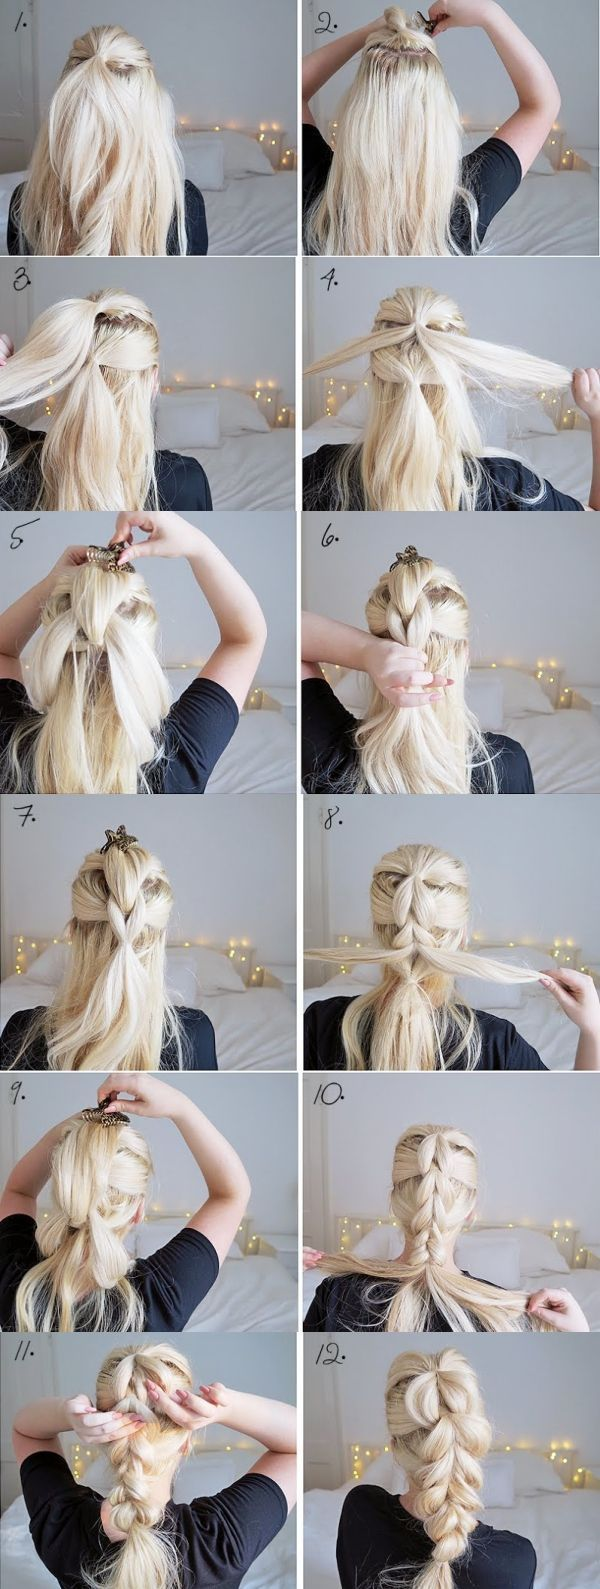 Coiffures pour luécole u the chunky braid easy